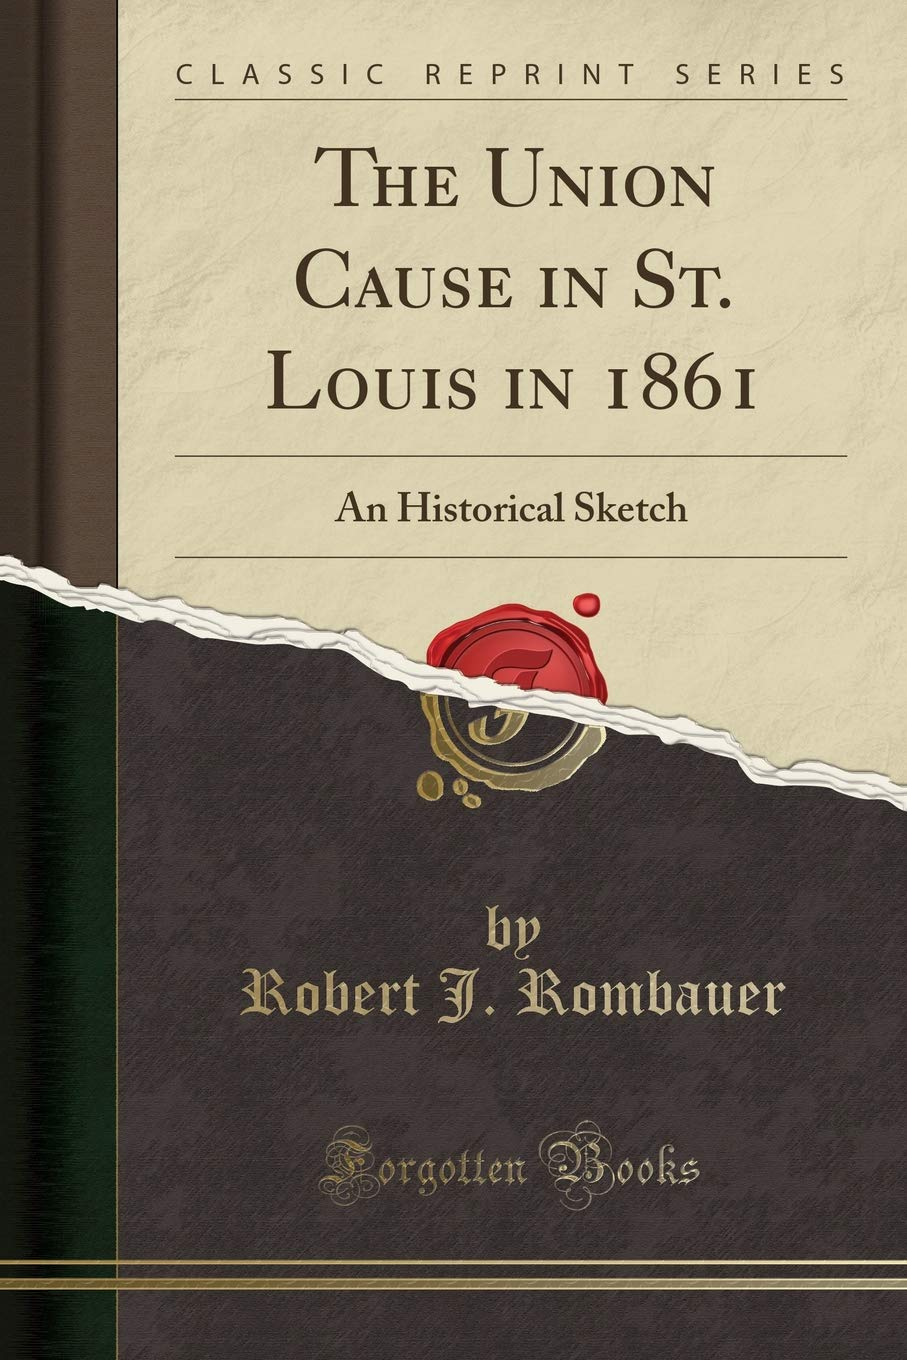 The Union Cause in St. Louis in 1861: An Historical Sketch (Classic Reprint) PDF